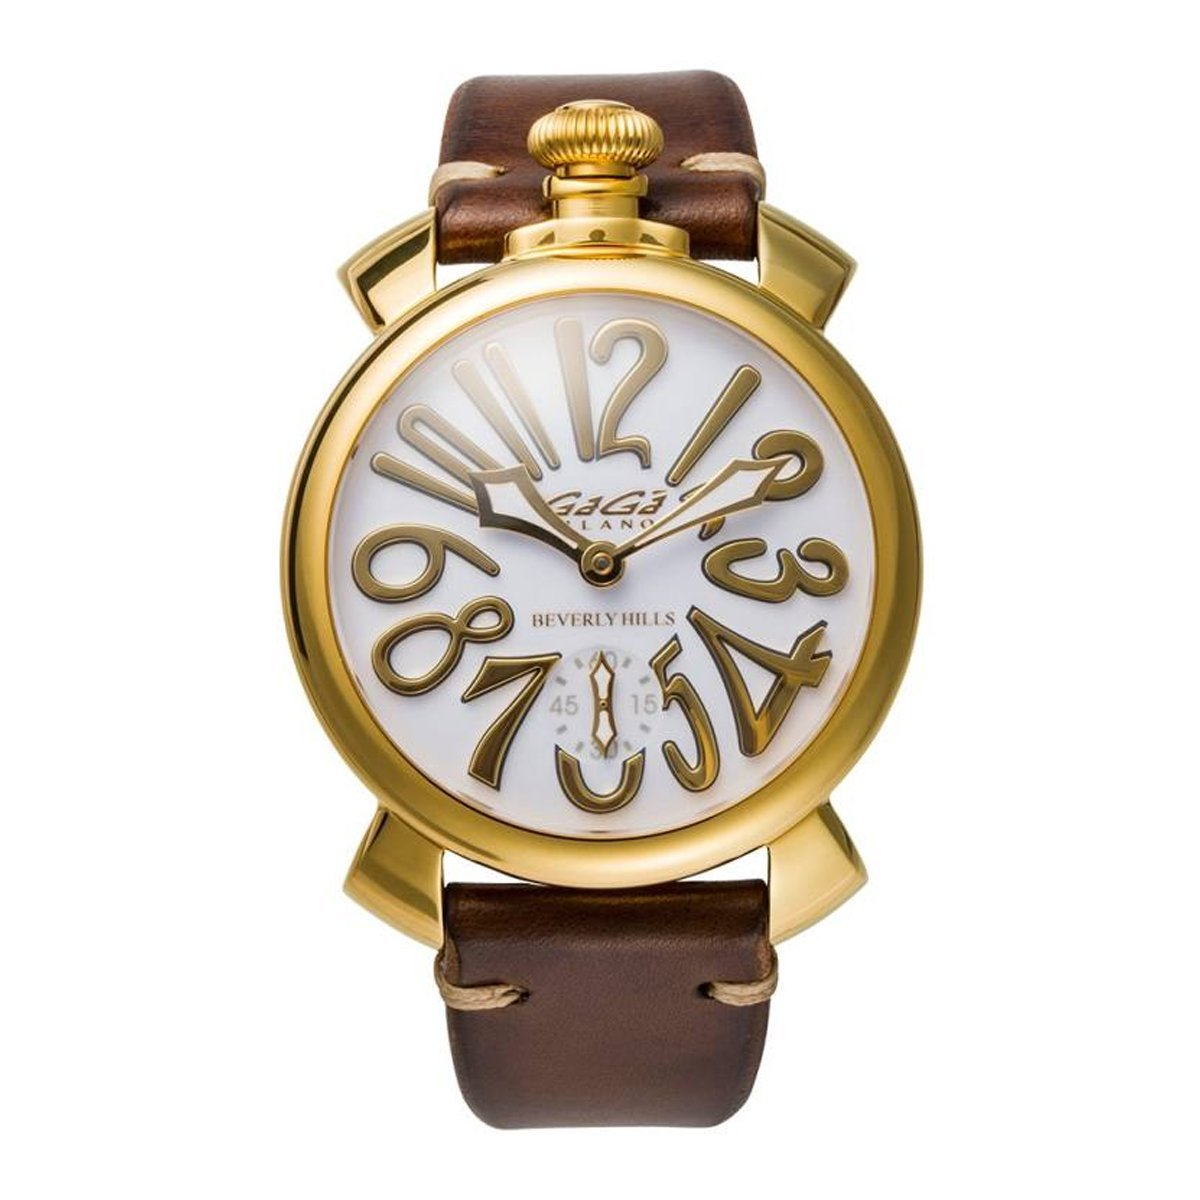 GaGà Milano Manuale 48 Gold Enamel Limited Edition - Watches & Crystals